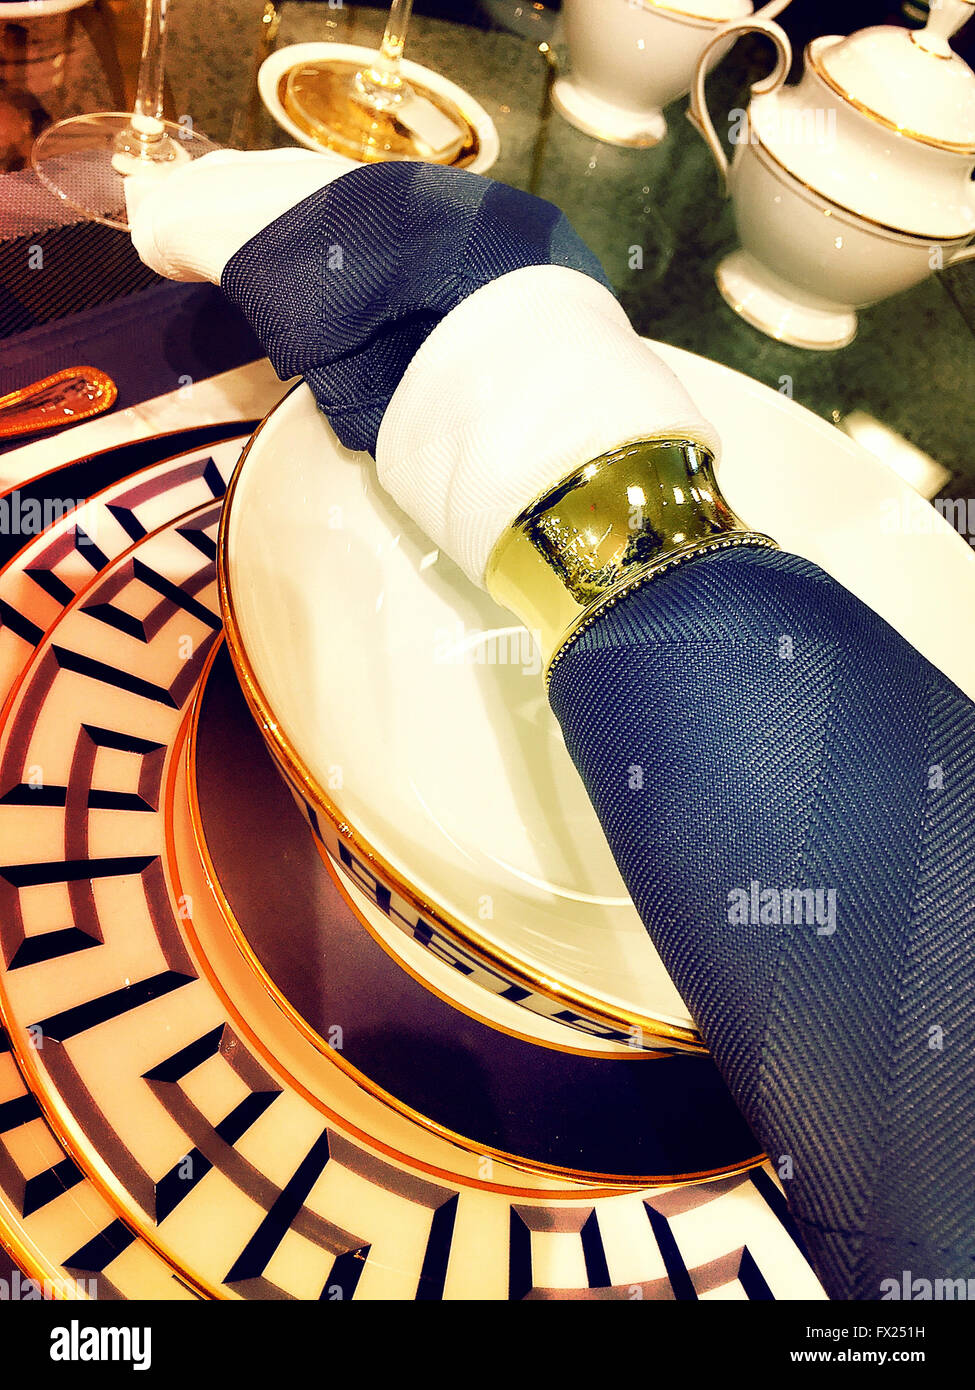 Elegant Dining Room Table Setting With Napkin Ring USA